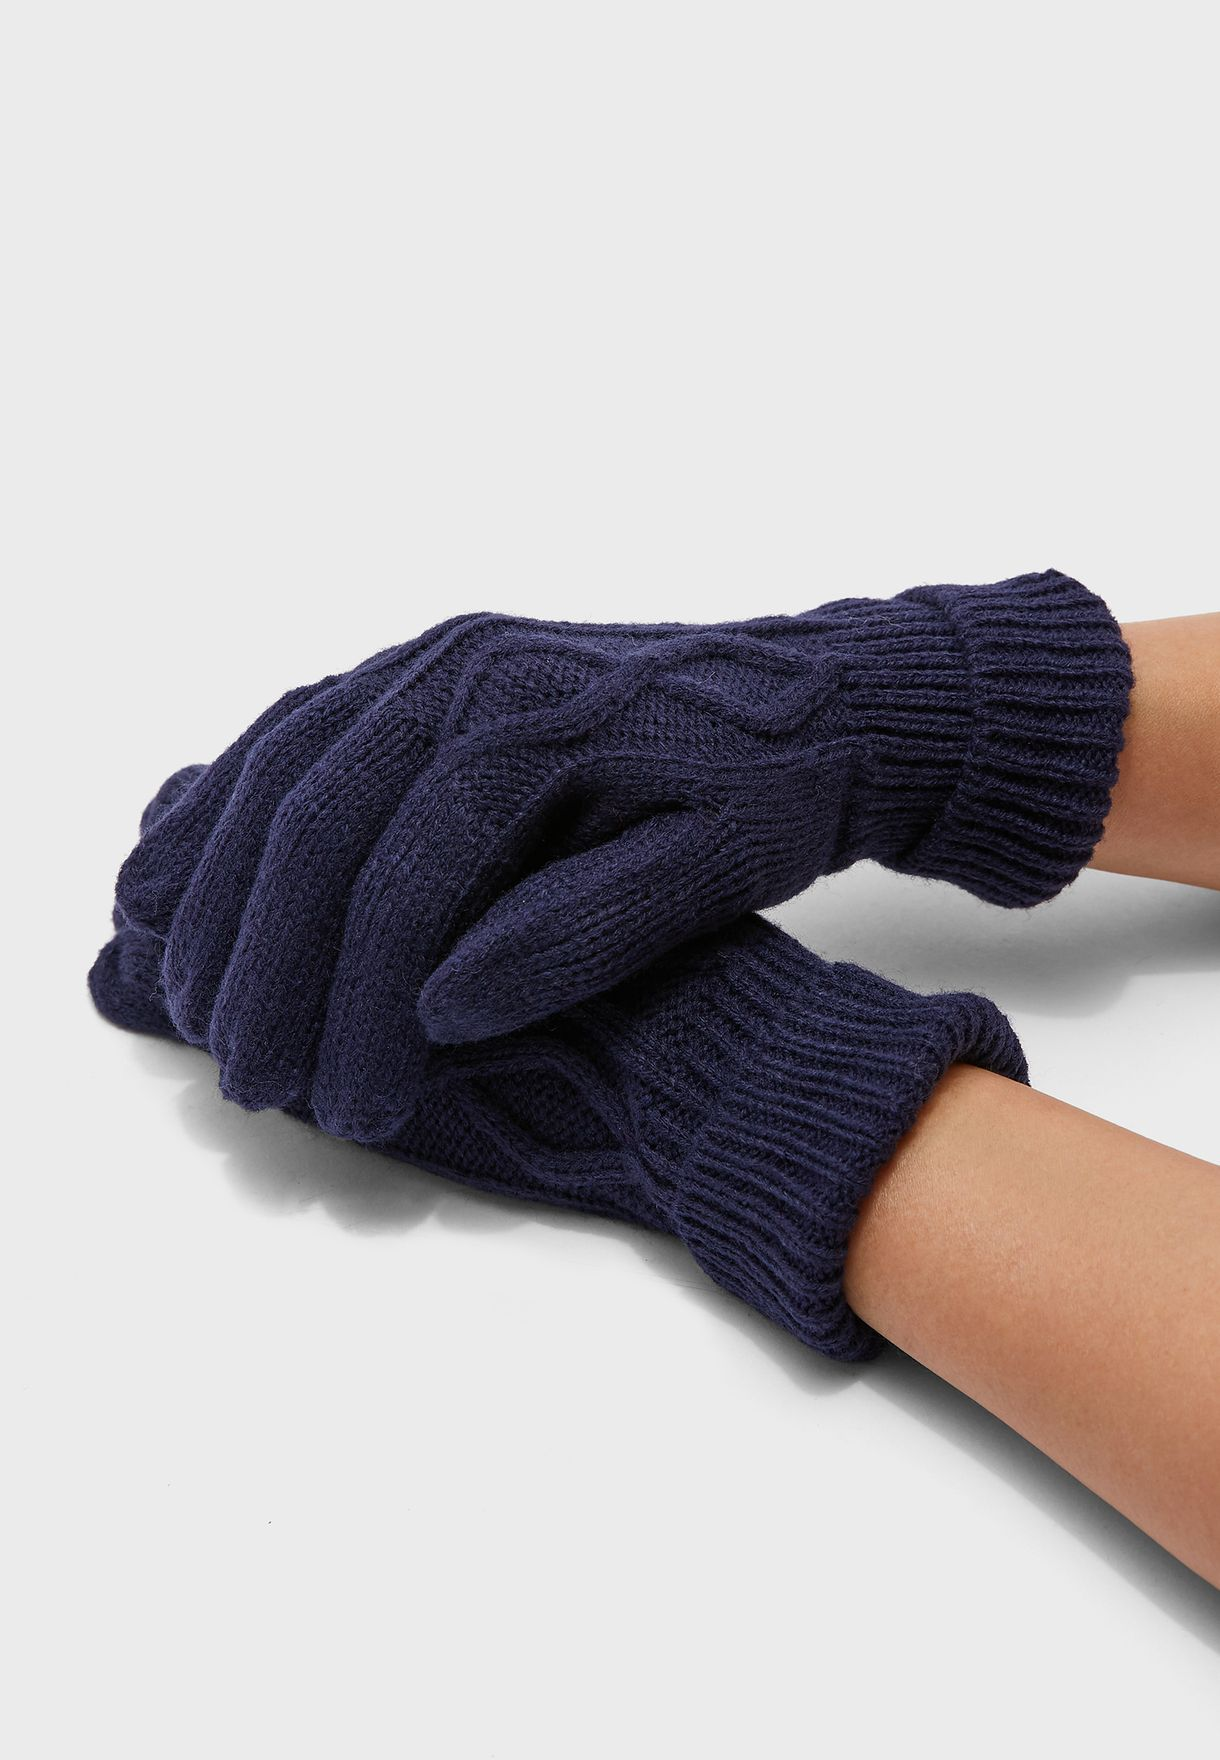 Mens Knitted Cable Gloves